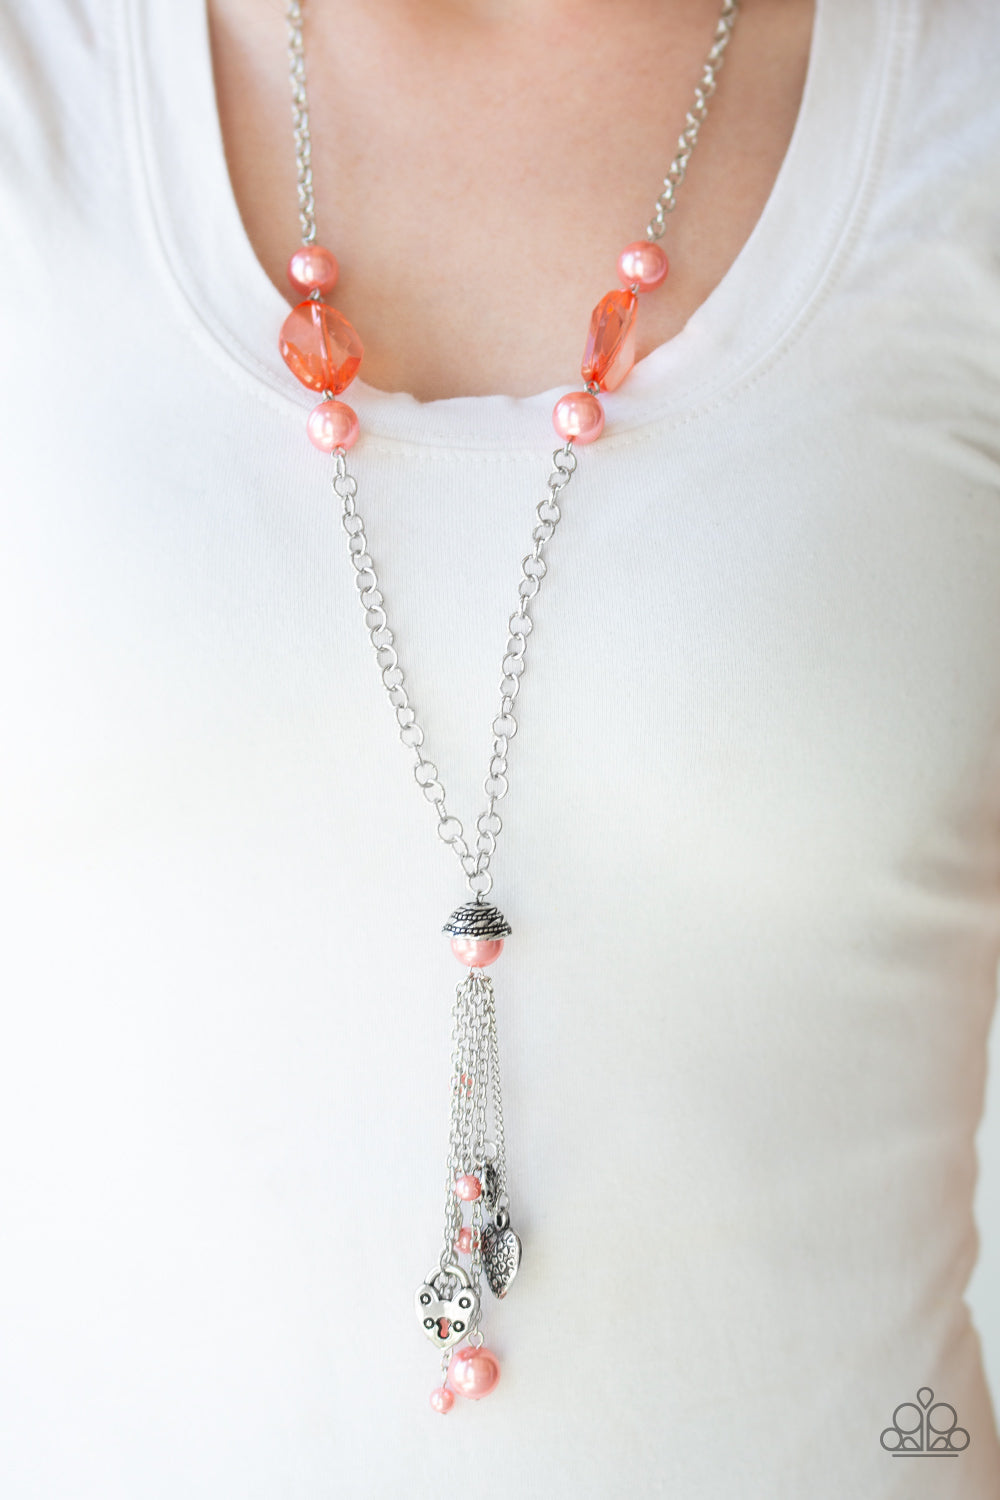 Paparazzi Accessories Heart-Stopping Harmony - Orange Necklaces - Lady T Accessories